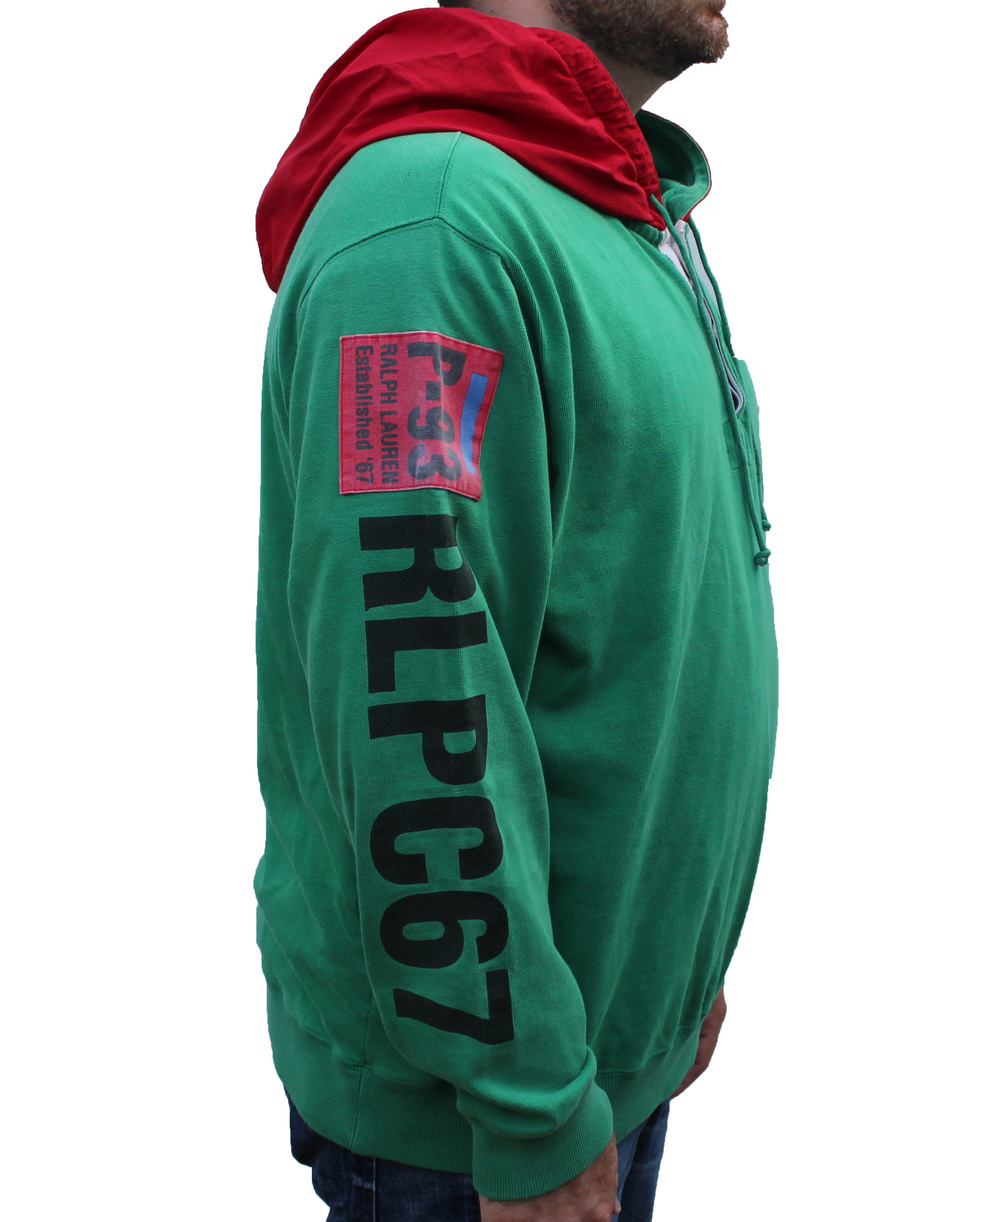 Vintage Polo RLPC67 Green / Red Hoodie (Size L) — Roots